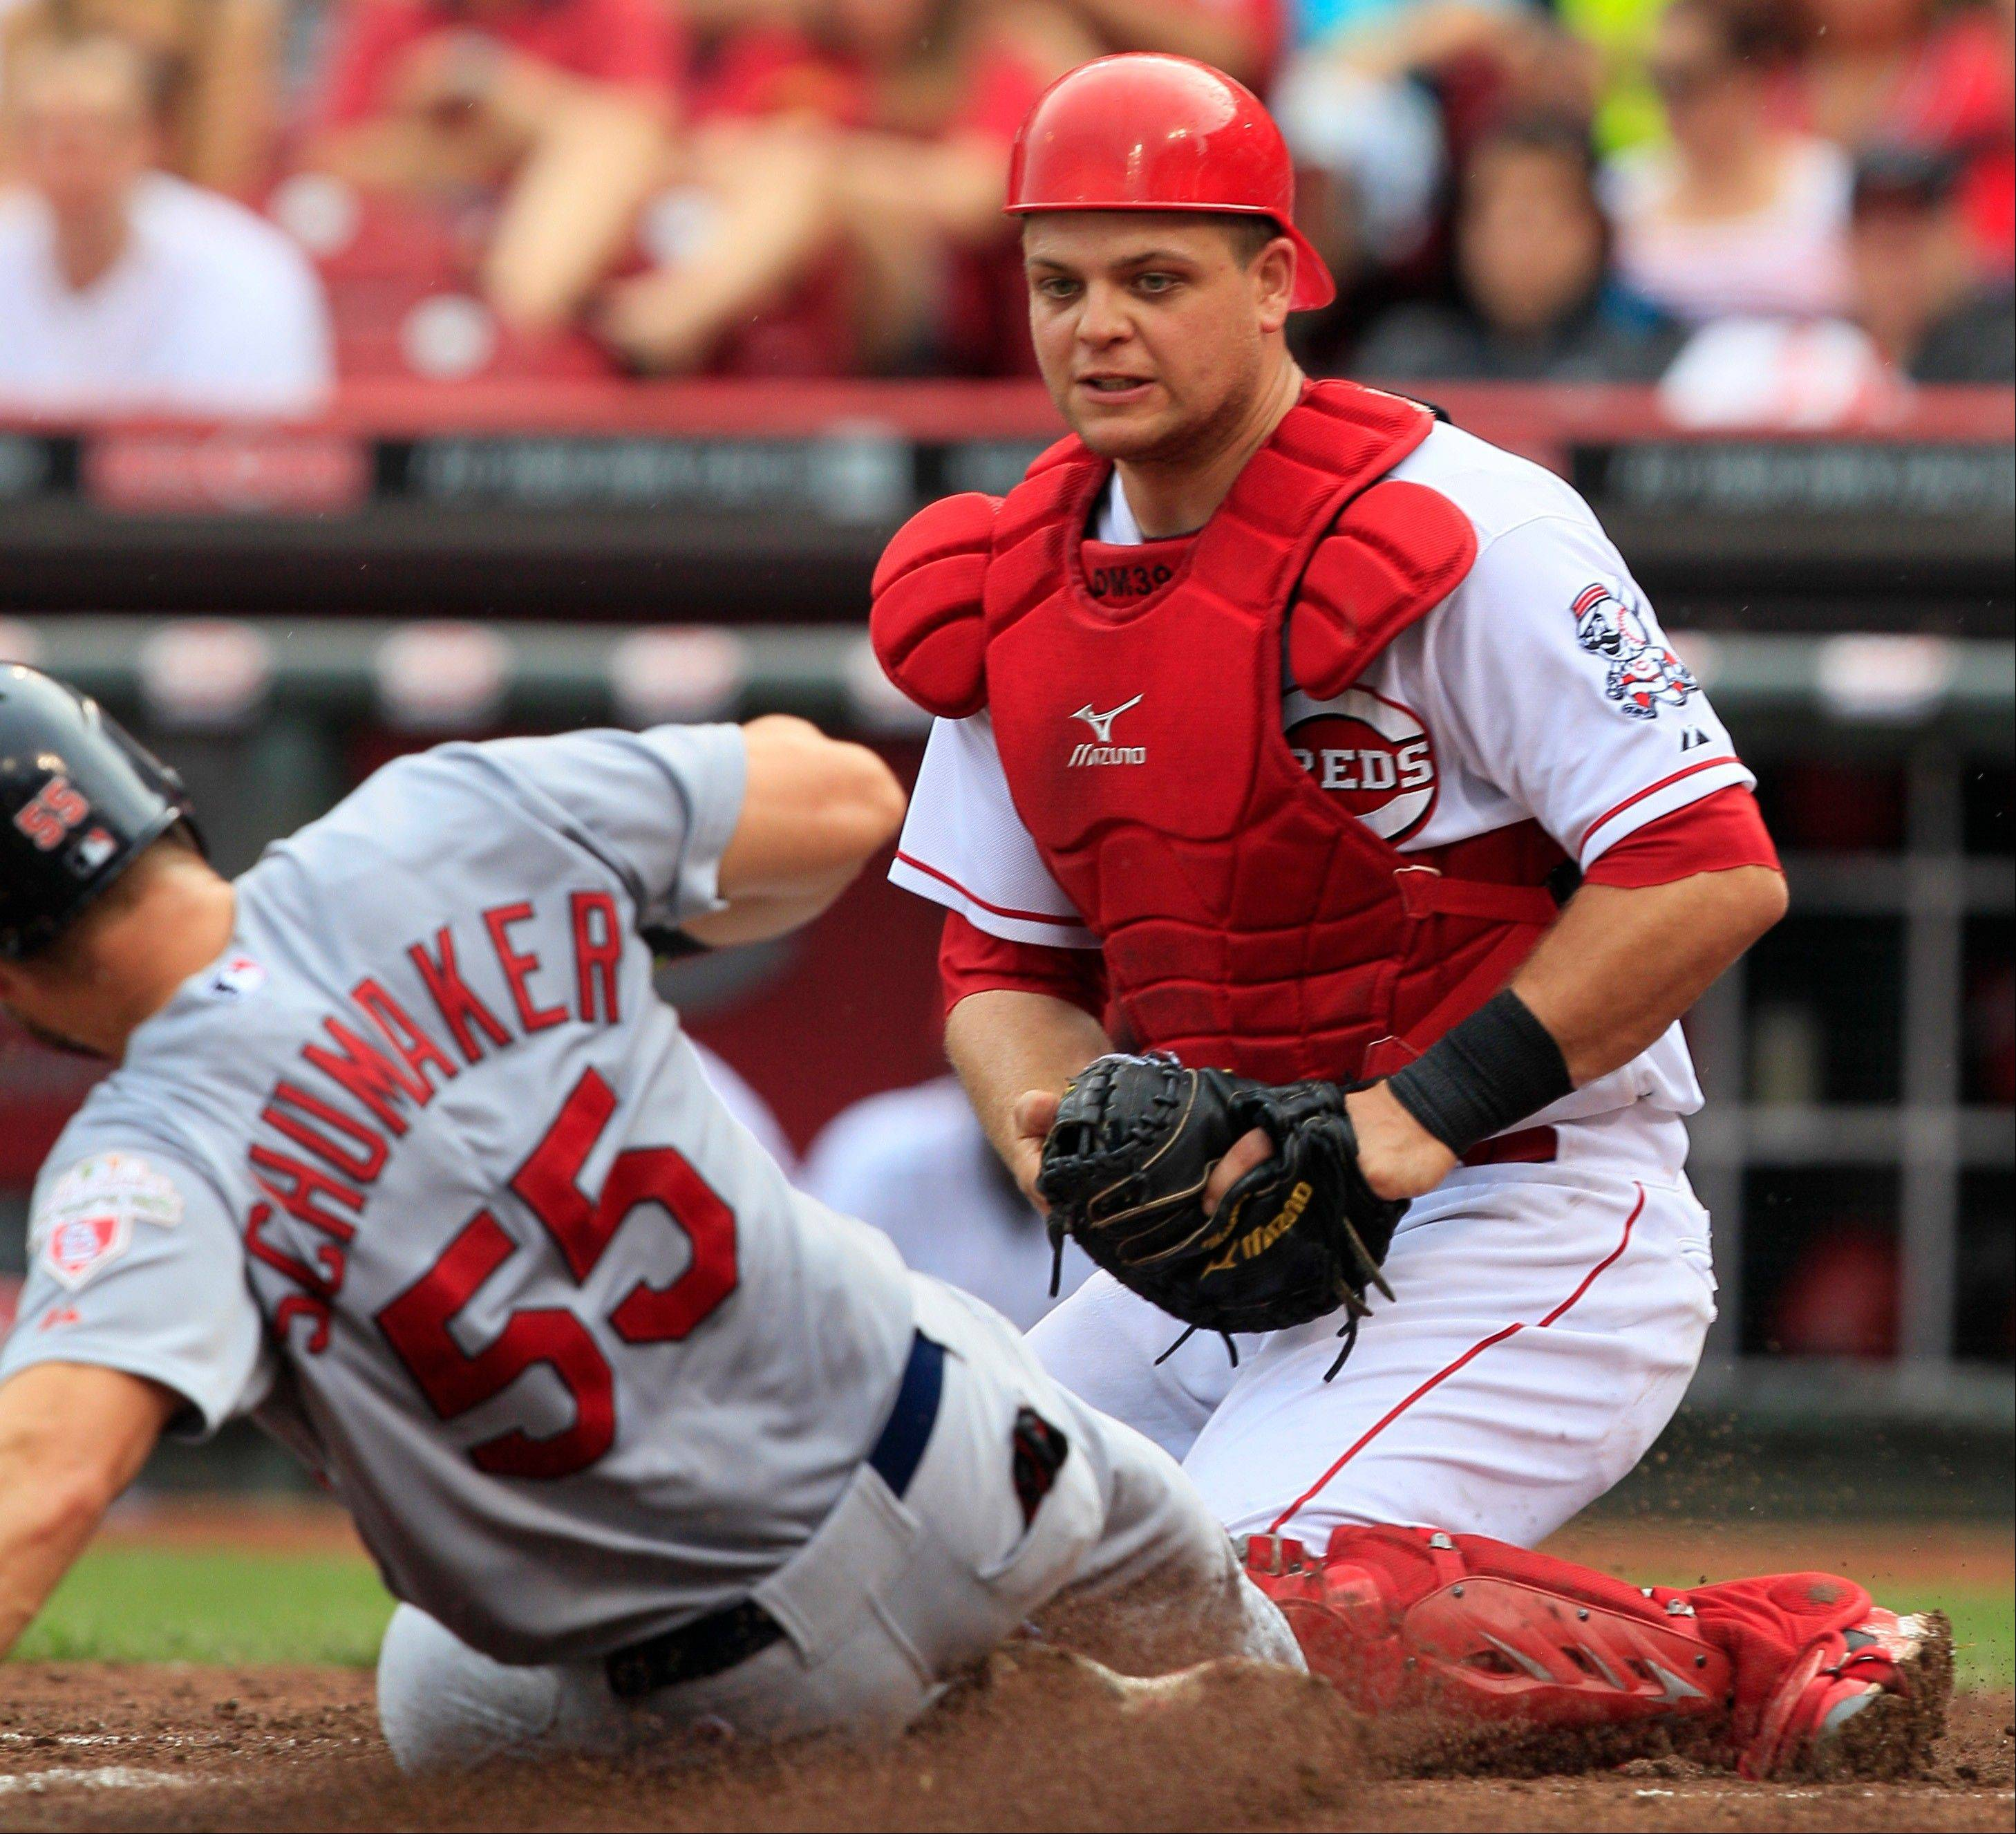 Cincinnati Reds catcher Devin Mesoraco tags out the St. Louis Cardinals' Skip Schumaker at home Saturday during the seventh inning in Cincinnati. Cincinnati won 3-2 in 10 innings.